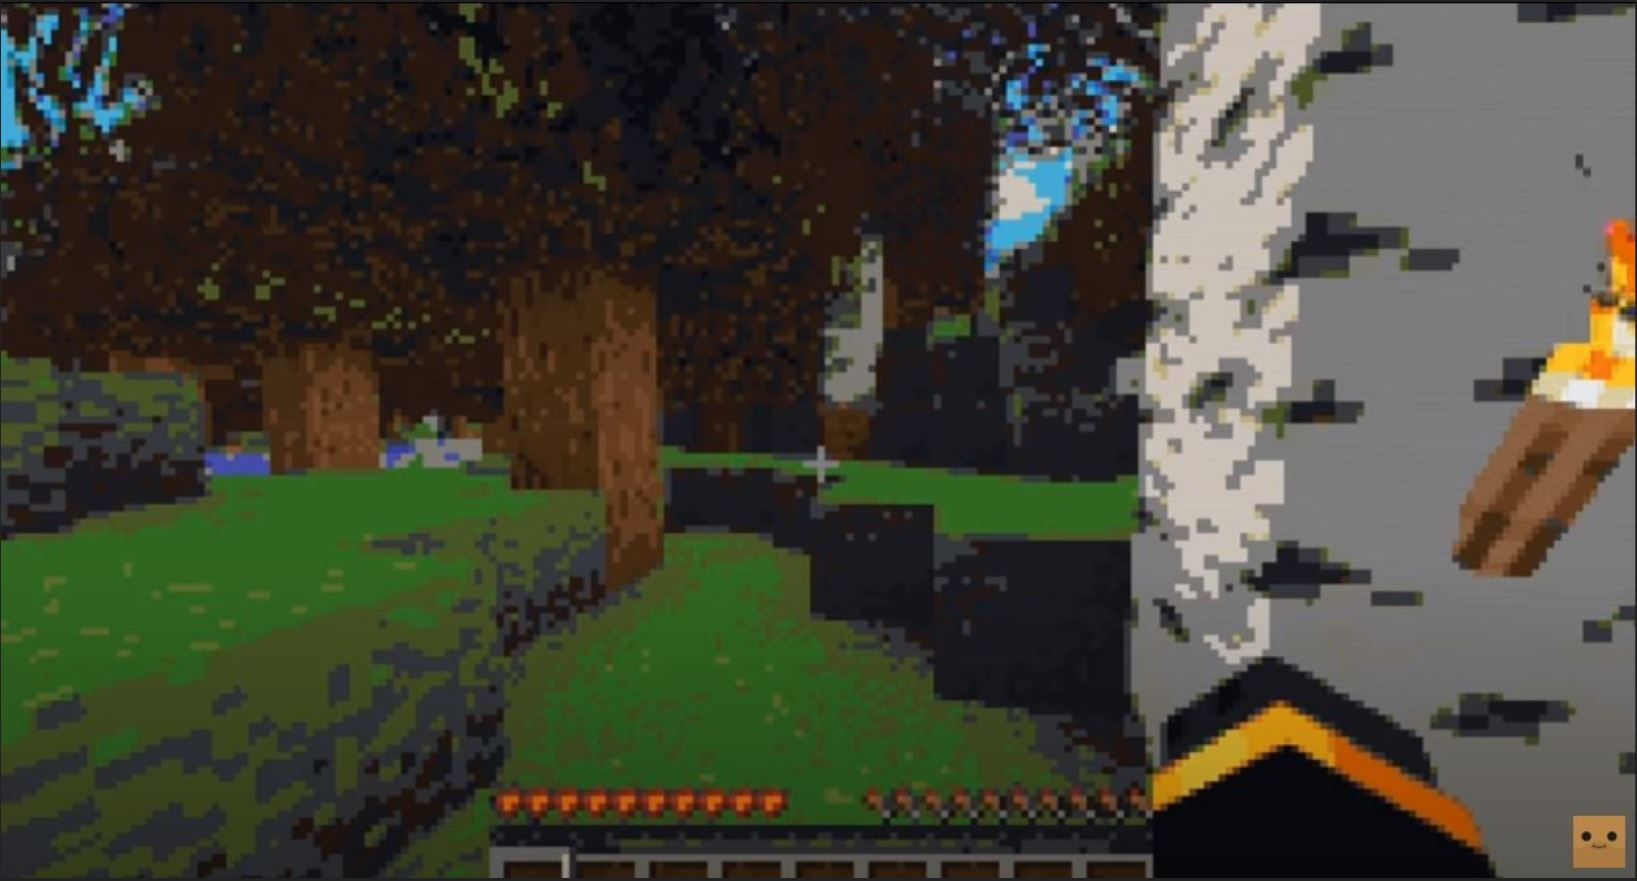 YouTuber Fundy Has Created A Fully Working Version of Minecraft in Minecraft